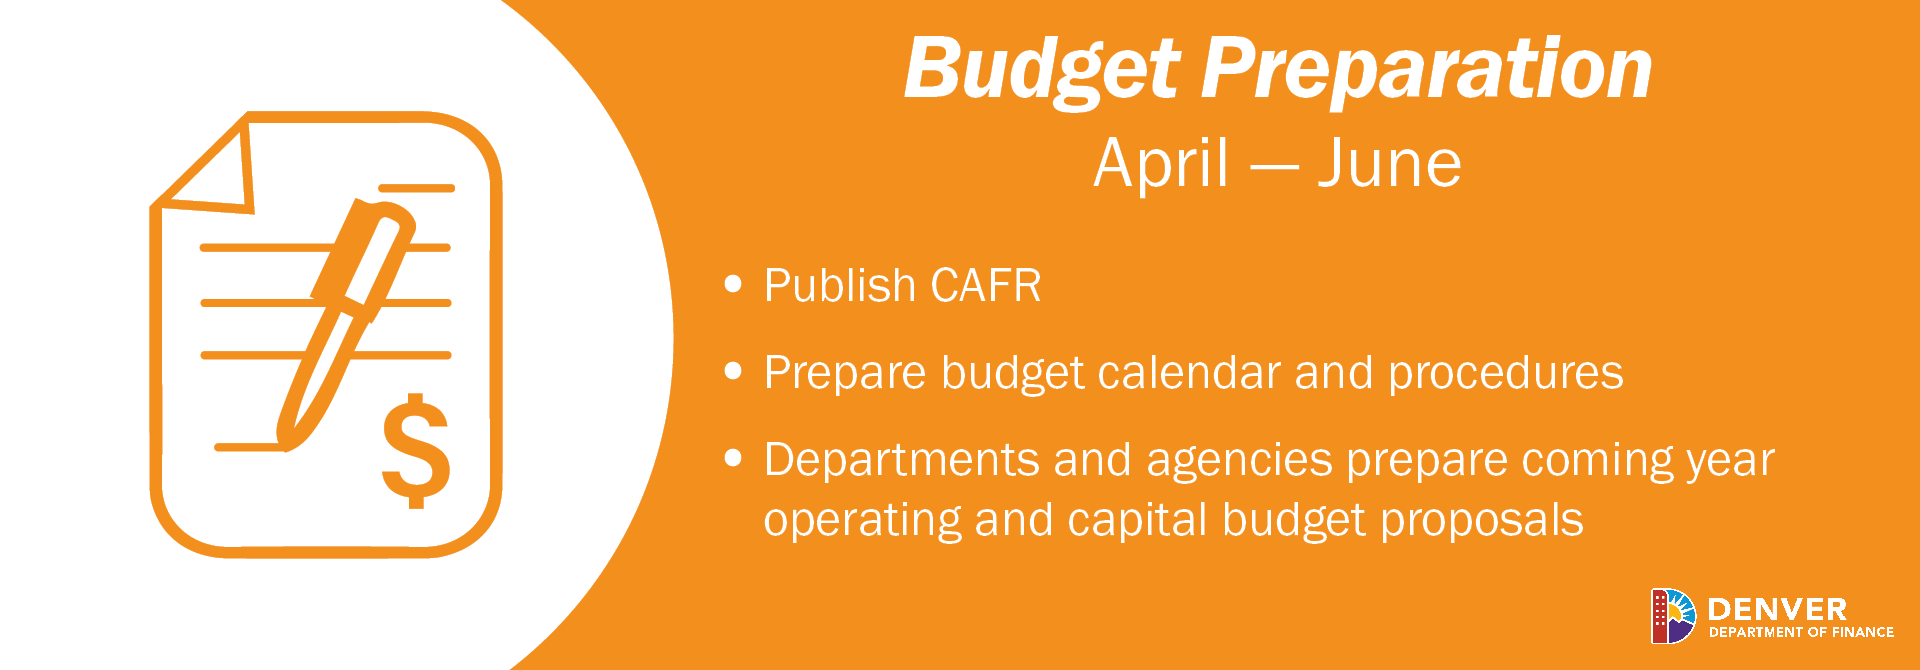 Budget Process: Q2 April through June - Publish CAFR, Prepare Budget Calendar, Agency budgeting begins